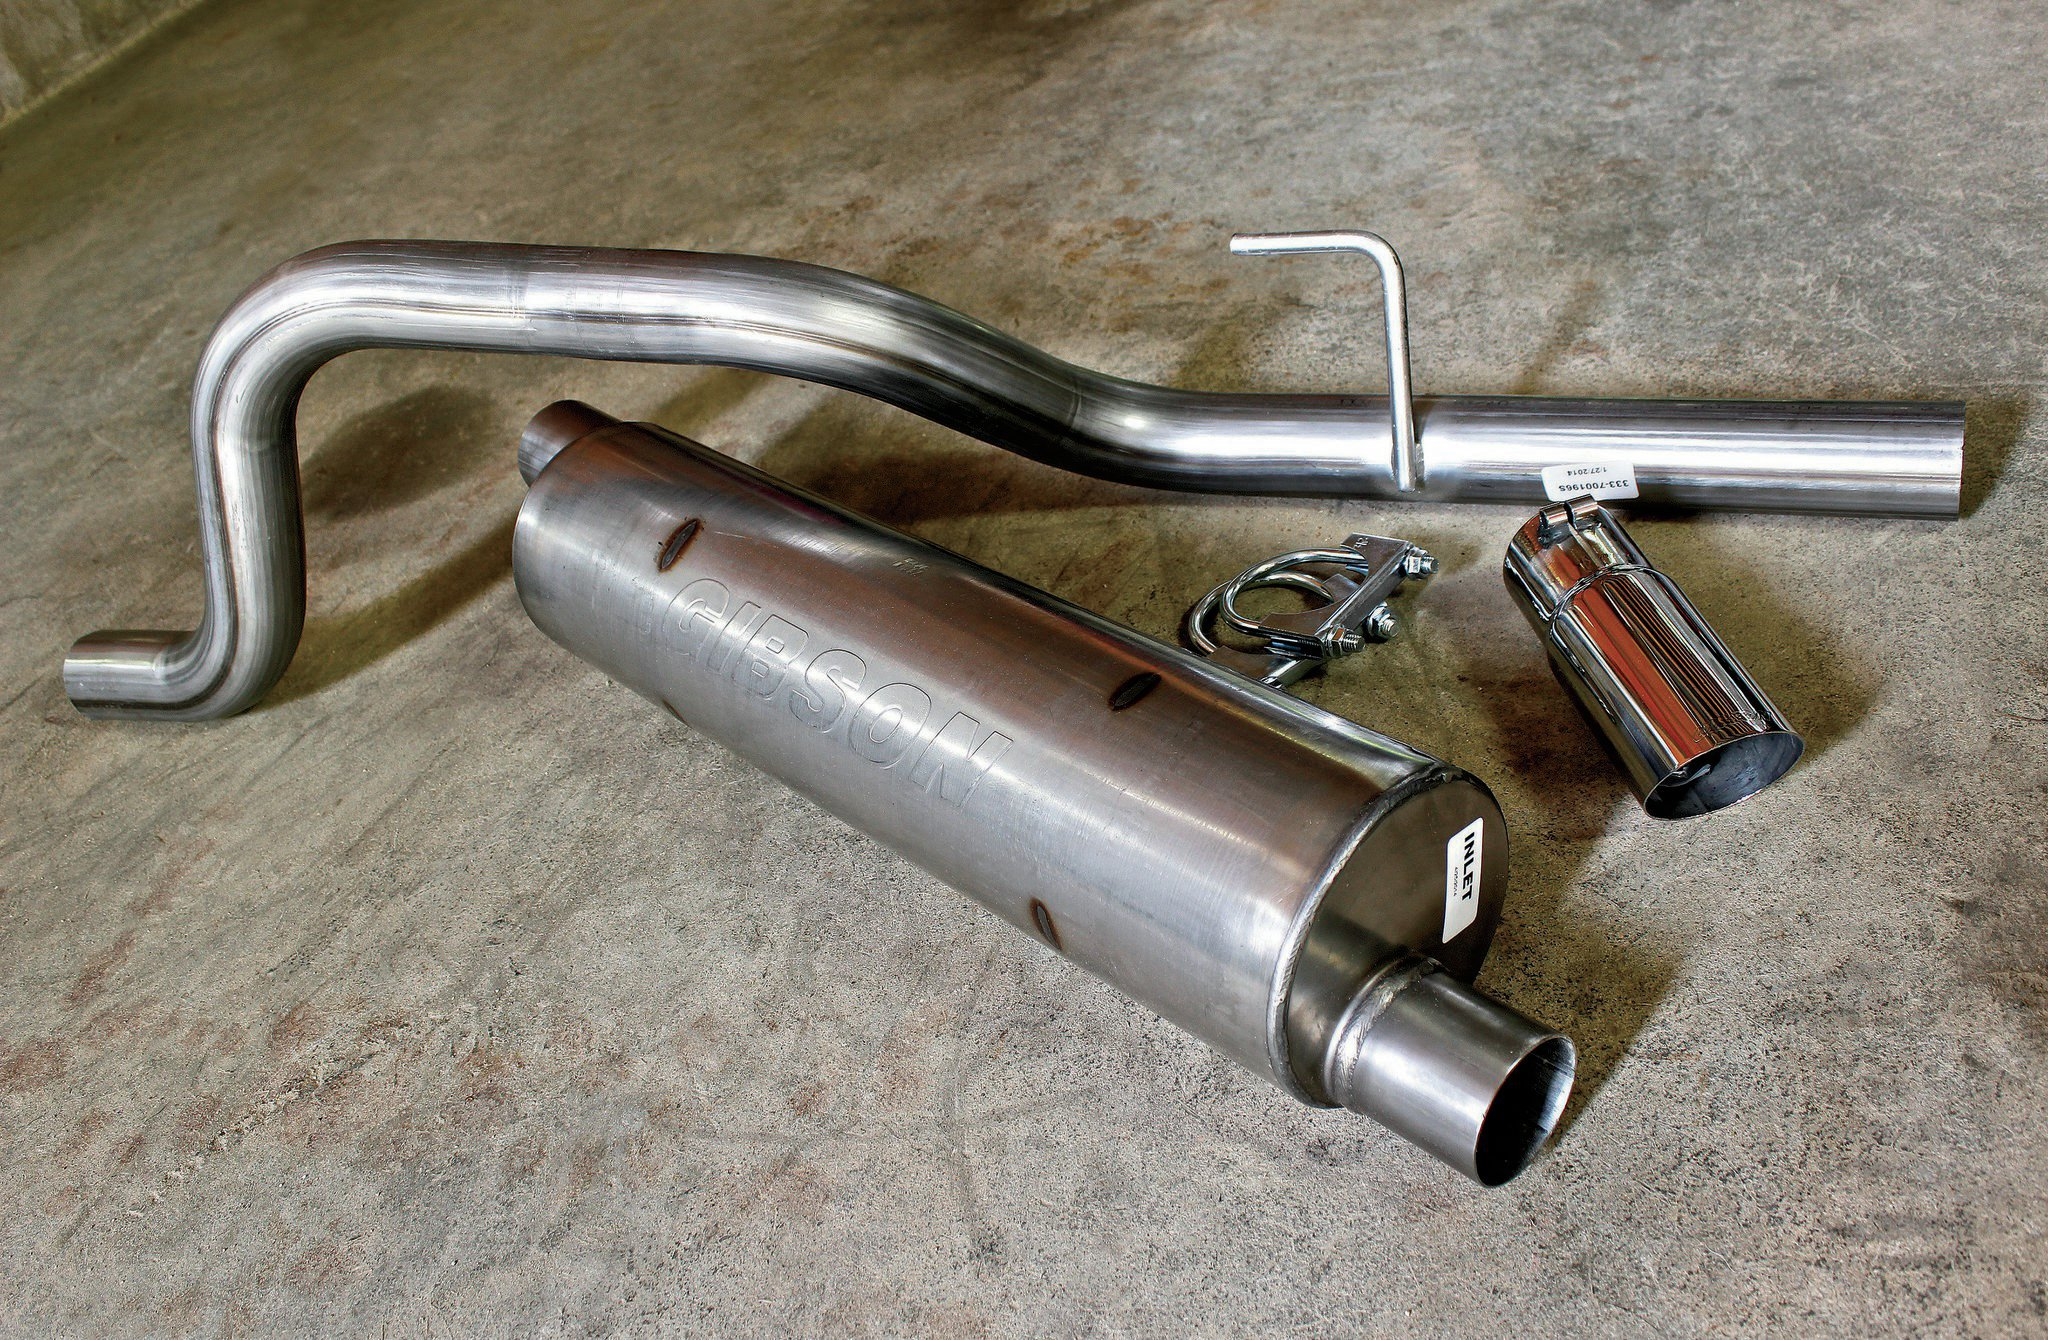 We took the opportunity to replace our aging, 10-year-old factory exhaust system with a killer-looking/sounding Gibson Performance stainless steel system. Included in the kit are a 2.5-inch-diameter stainless mandrel-bent tailpipe, stainless chambered/baffled (no packing to burn out) muffler, a T304 3-inch polished tip, and all the necessary clamps and hardware. So long as we don't mash it on a rock, it might just outlast the Jeep.